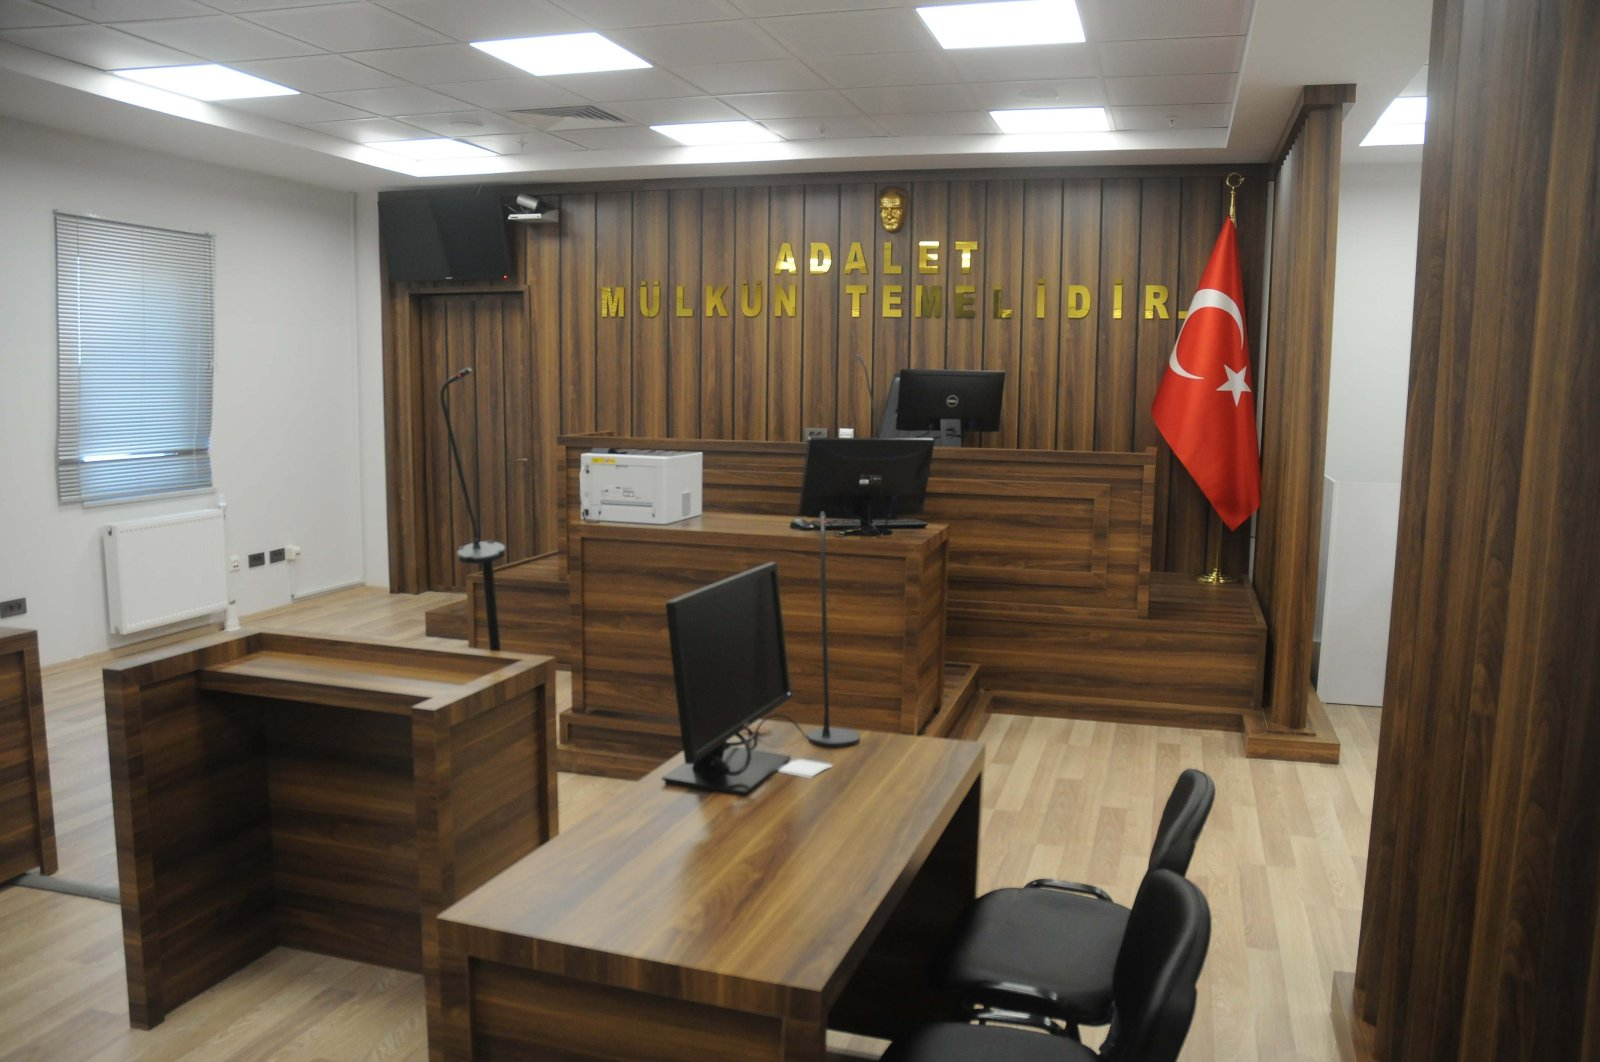 A view of the courtroom inside the airport, in Istanbul, Turkey, Jan. 25, 2021. (PHOTO BY CEVDET ÖZDEMİR)